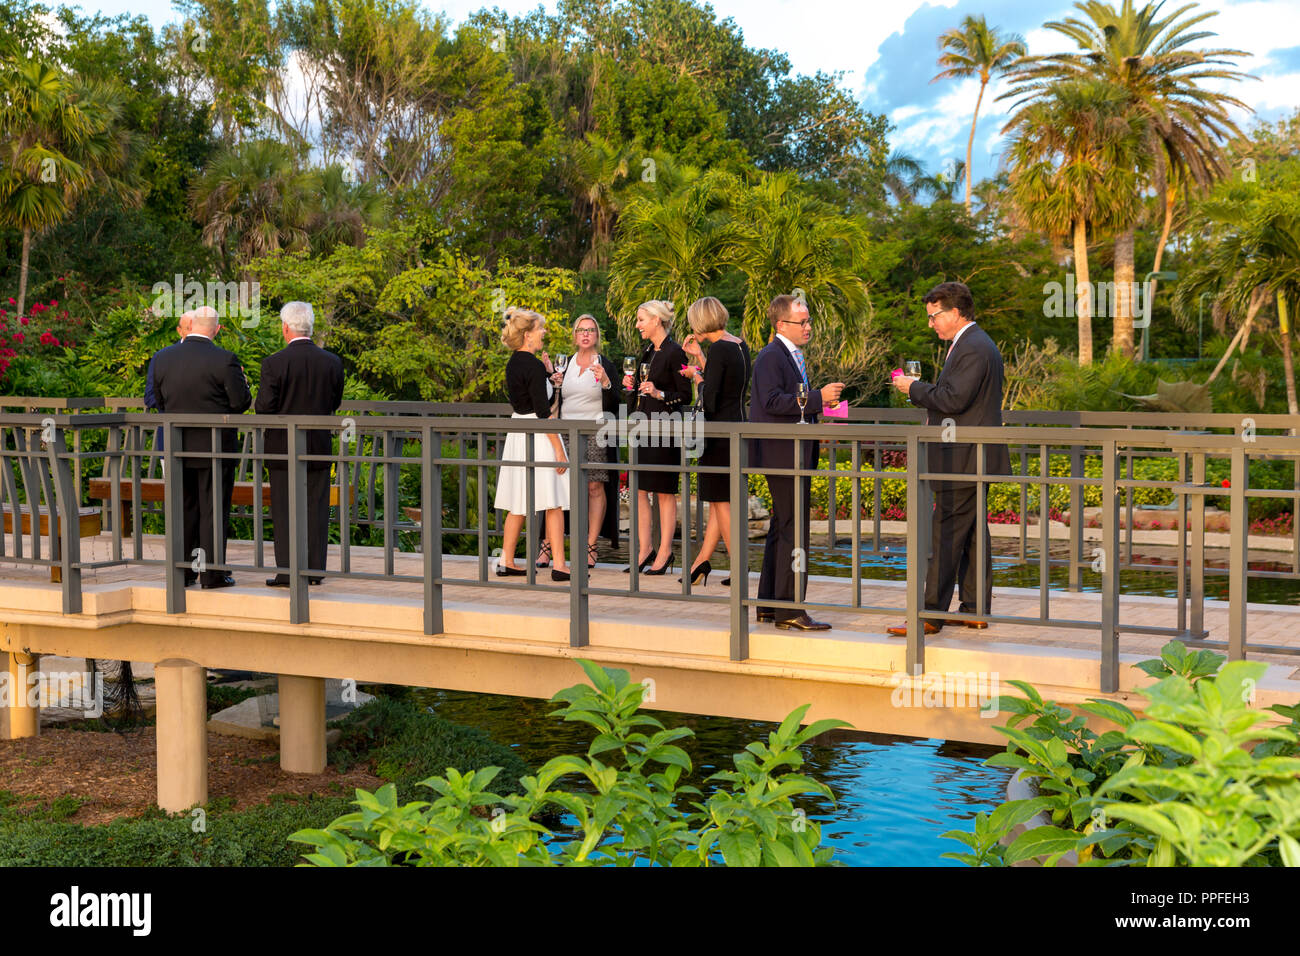 Guests in conversation at outdoor garden party, Naples, Florida, USA - Stock Image